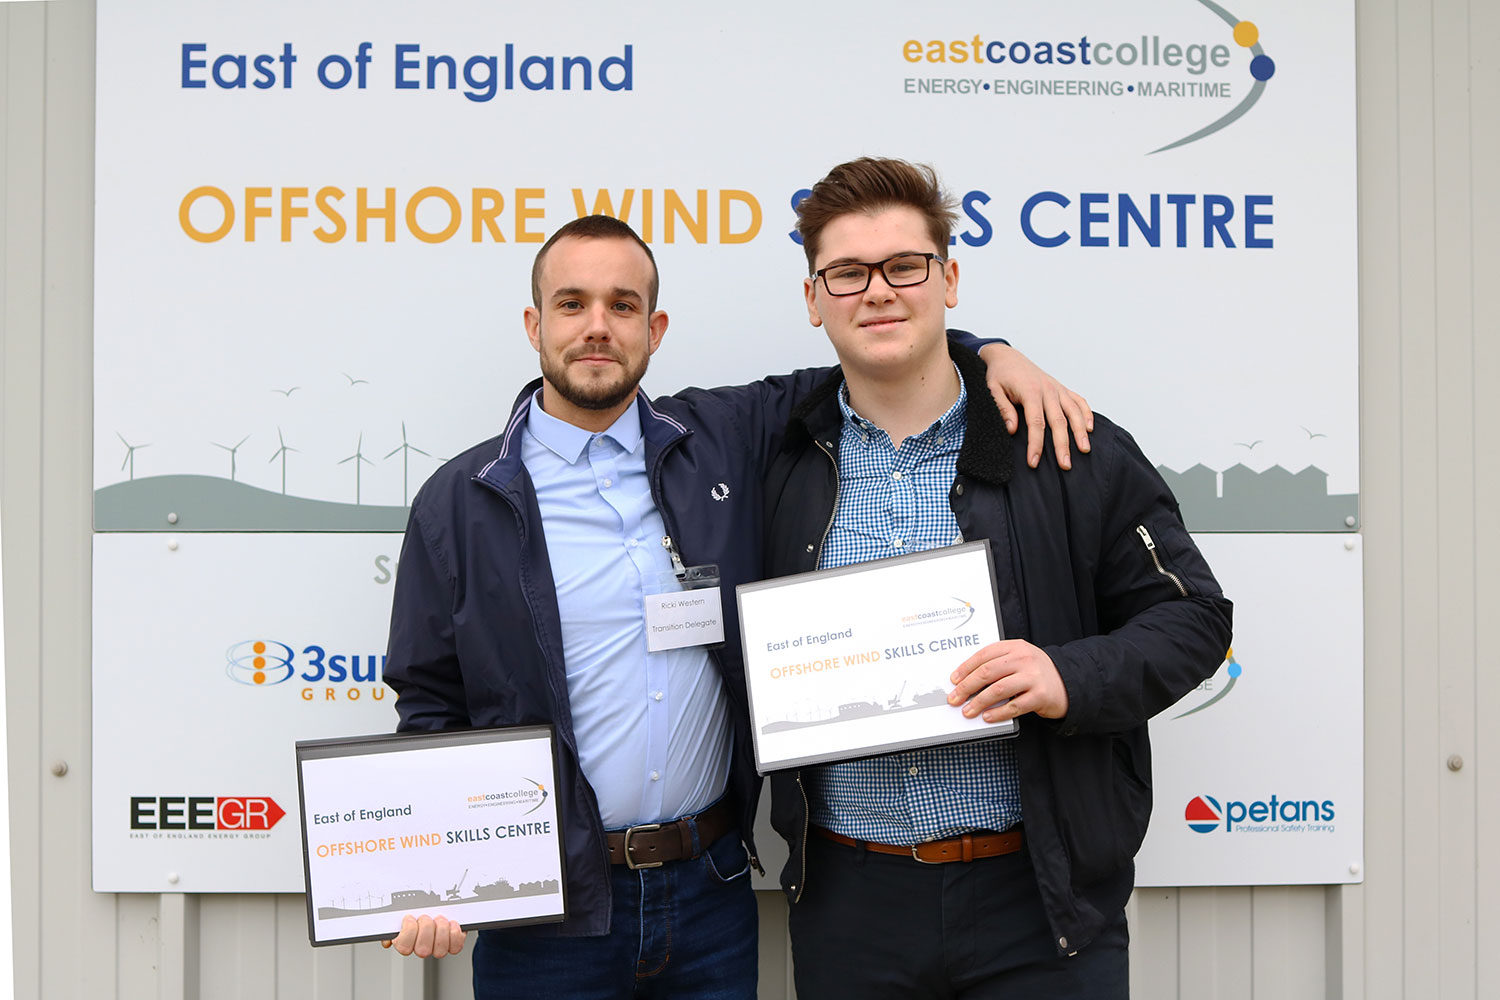 Organisation Image: (East of England Offshore Wind Skills Centre: Graduates)